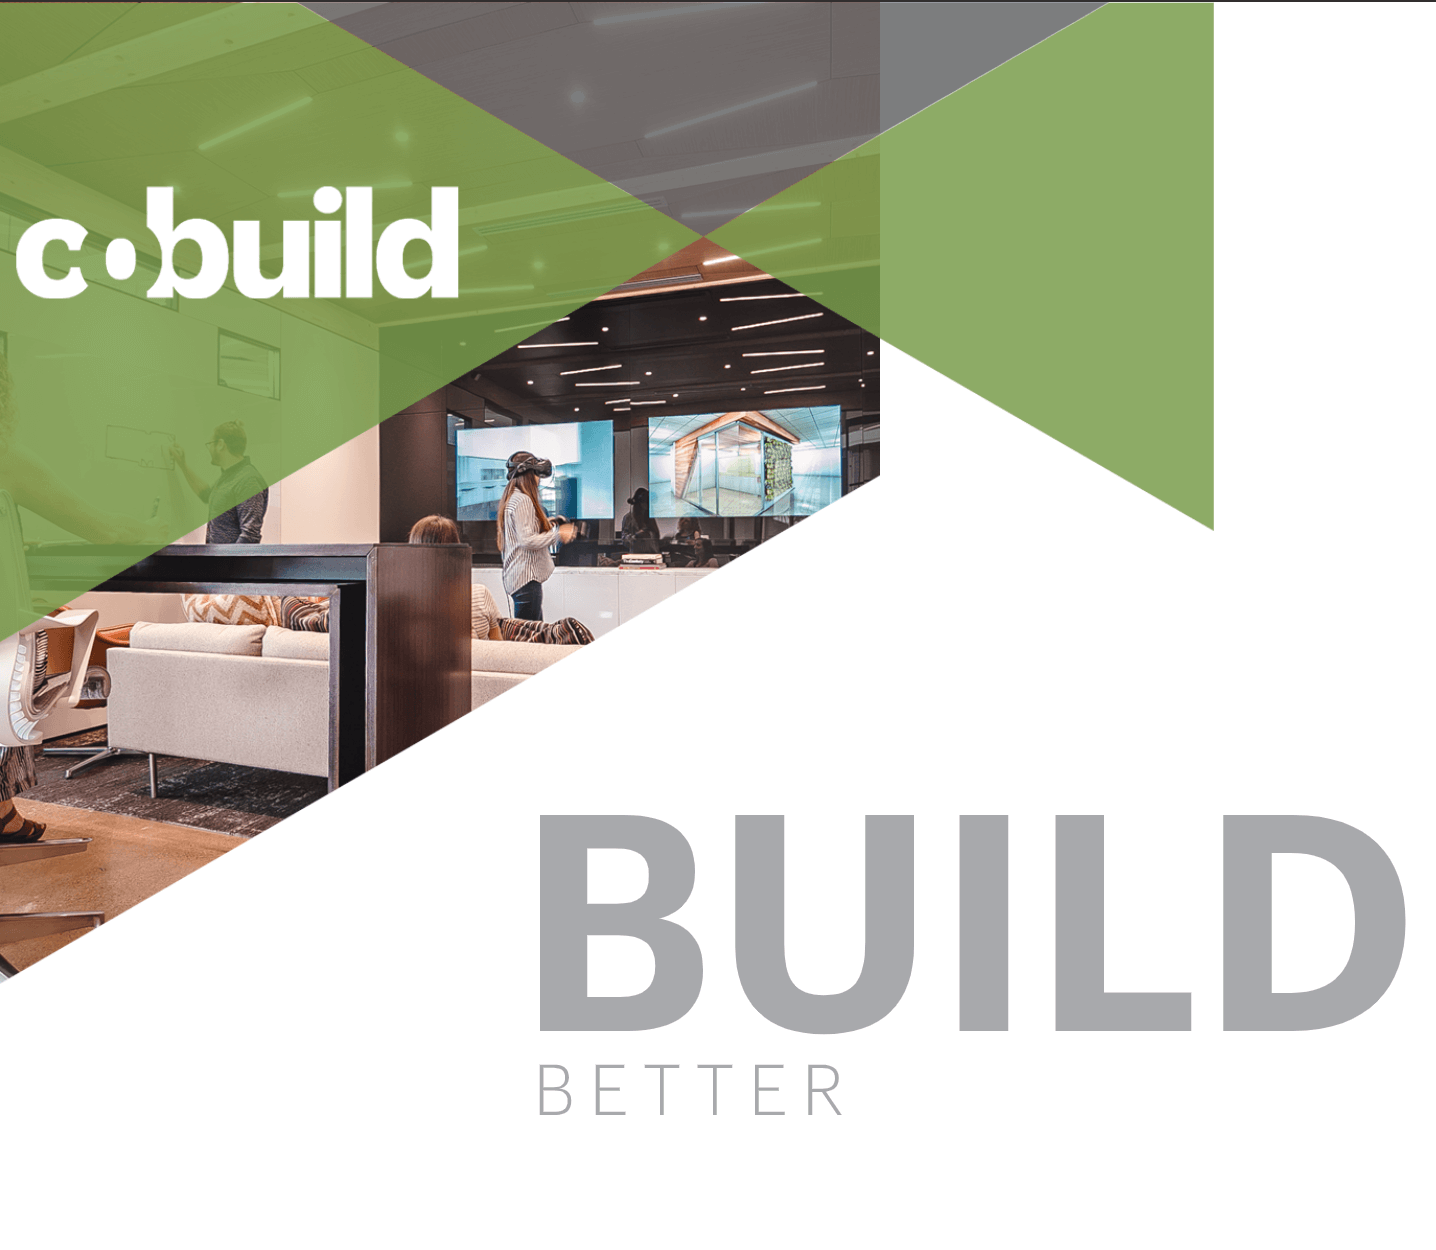 Builditbetter-ebook-coBuild (2)